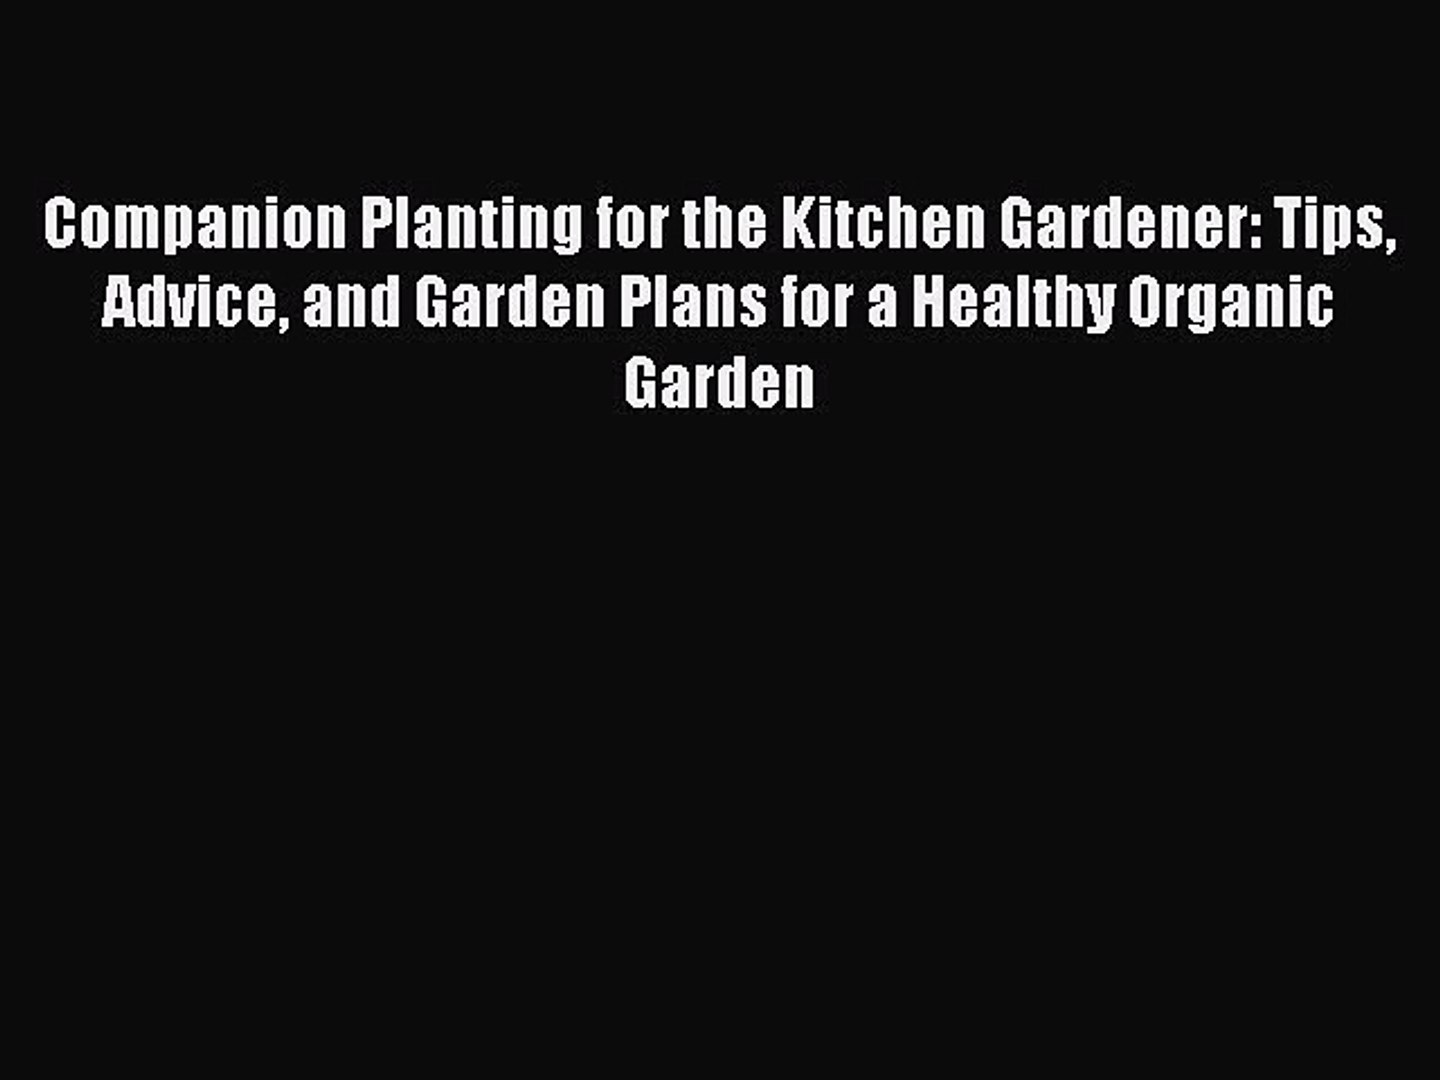 Read Companion Planting for the Kitchen Gardener: Tips Advice and Garden Plans for a Healthy